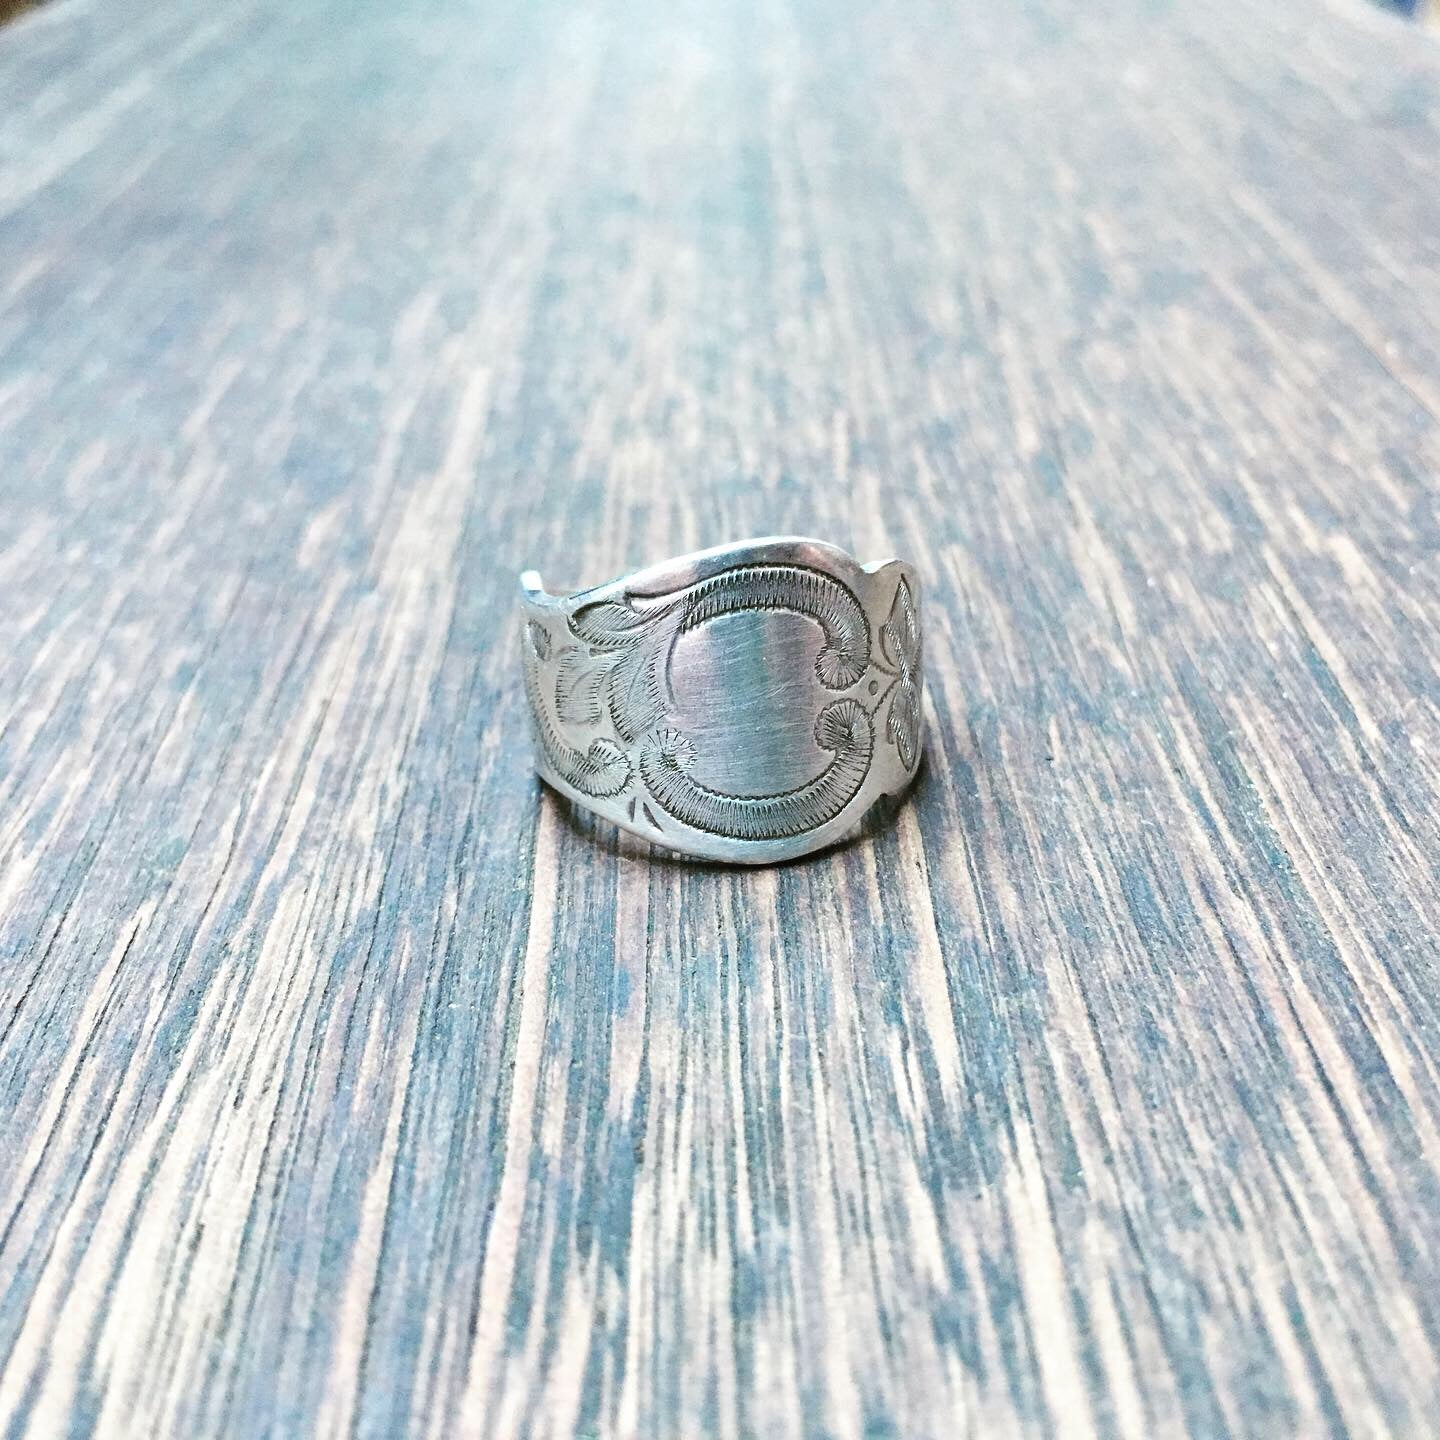 Sterling Silver Ring crafted from antique spoon